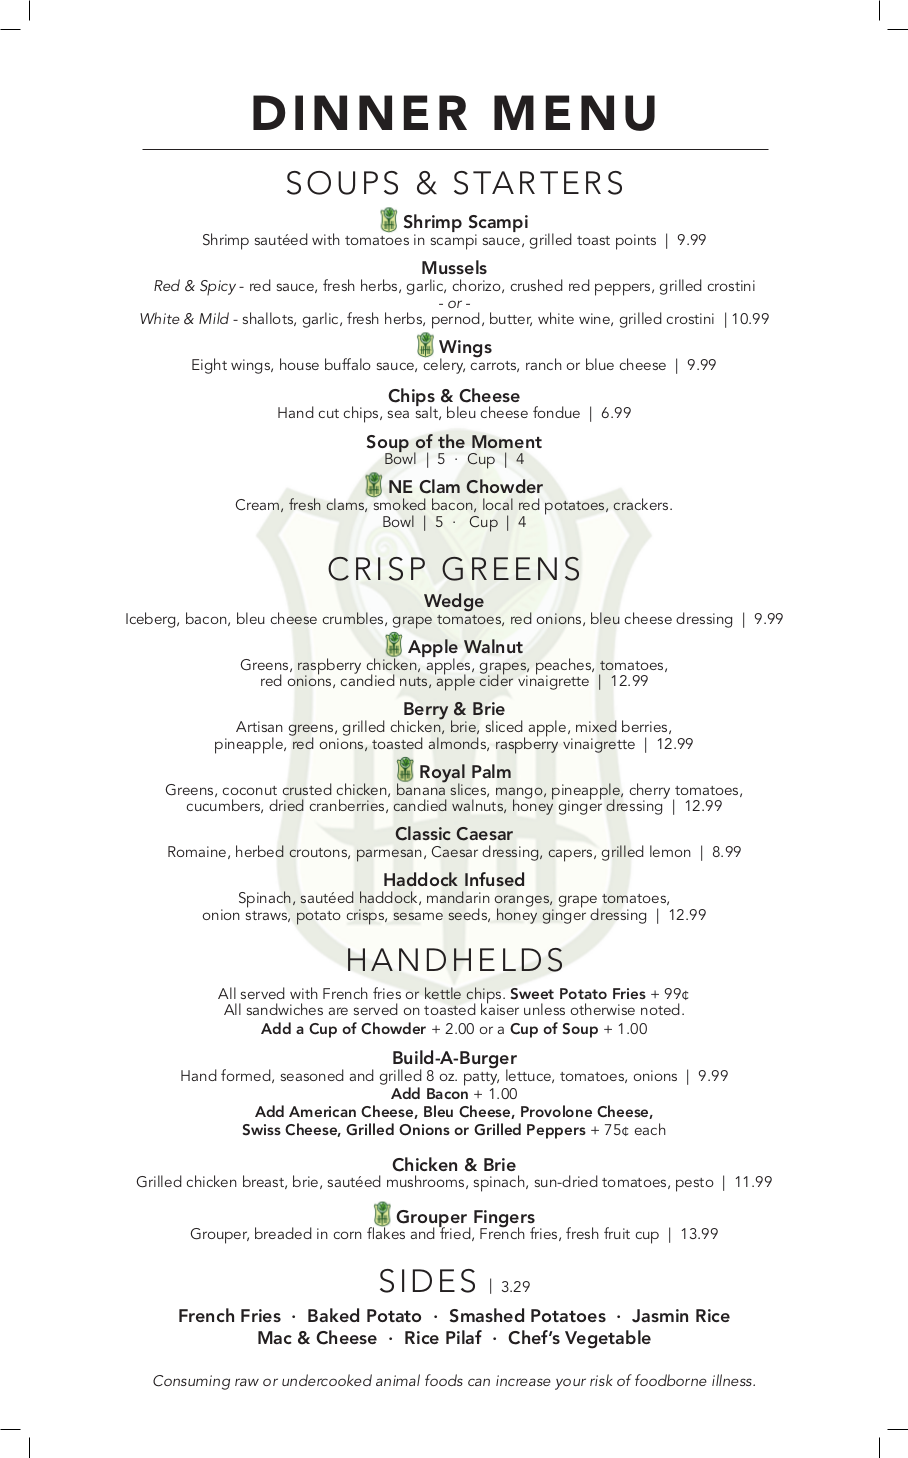 Hacienda Hills_Dinner Menu_063092_PR-00848_11.2017_PRINT.png